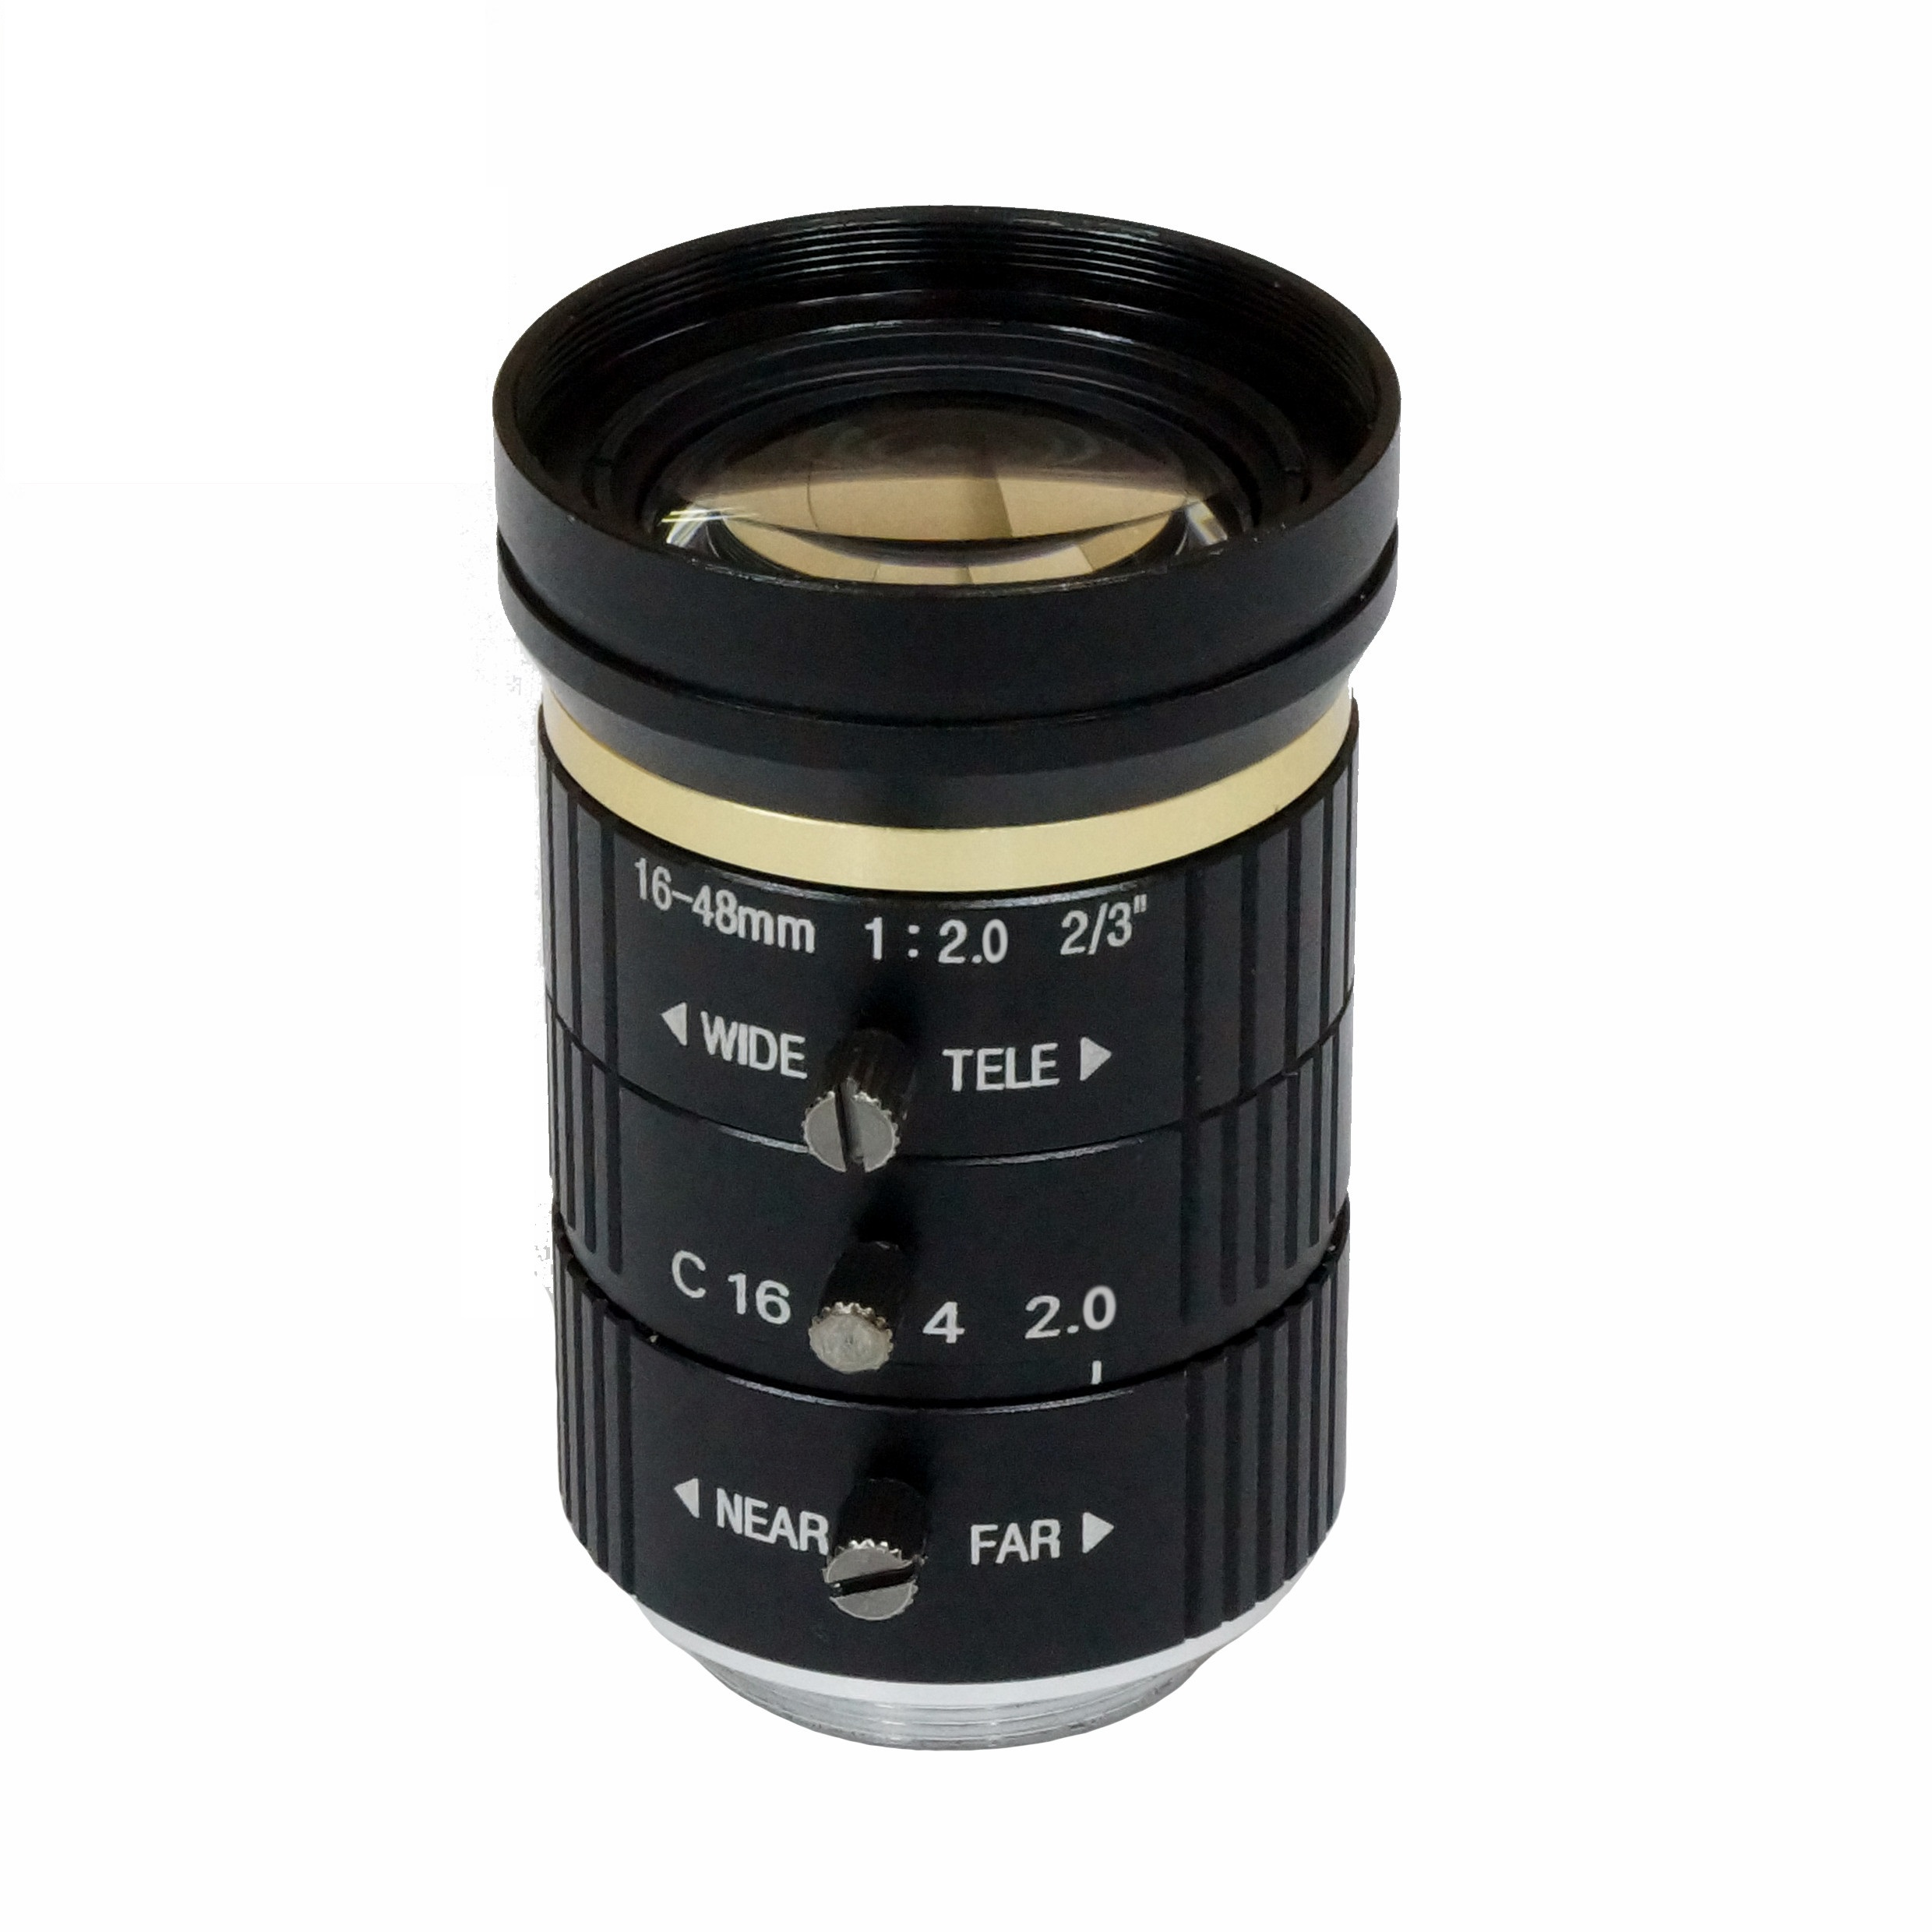 3.0 Megapixel lens machine vision 16-48mm 2/3""